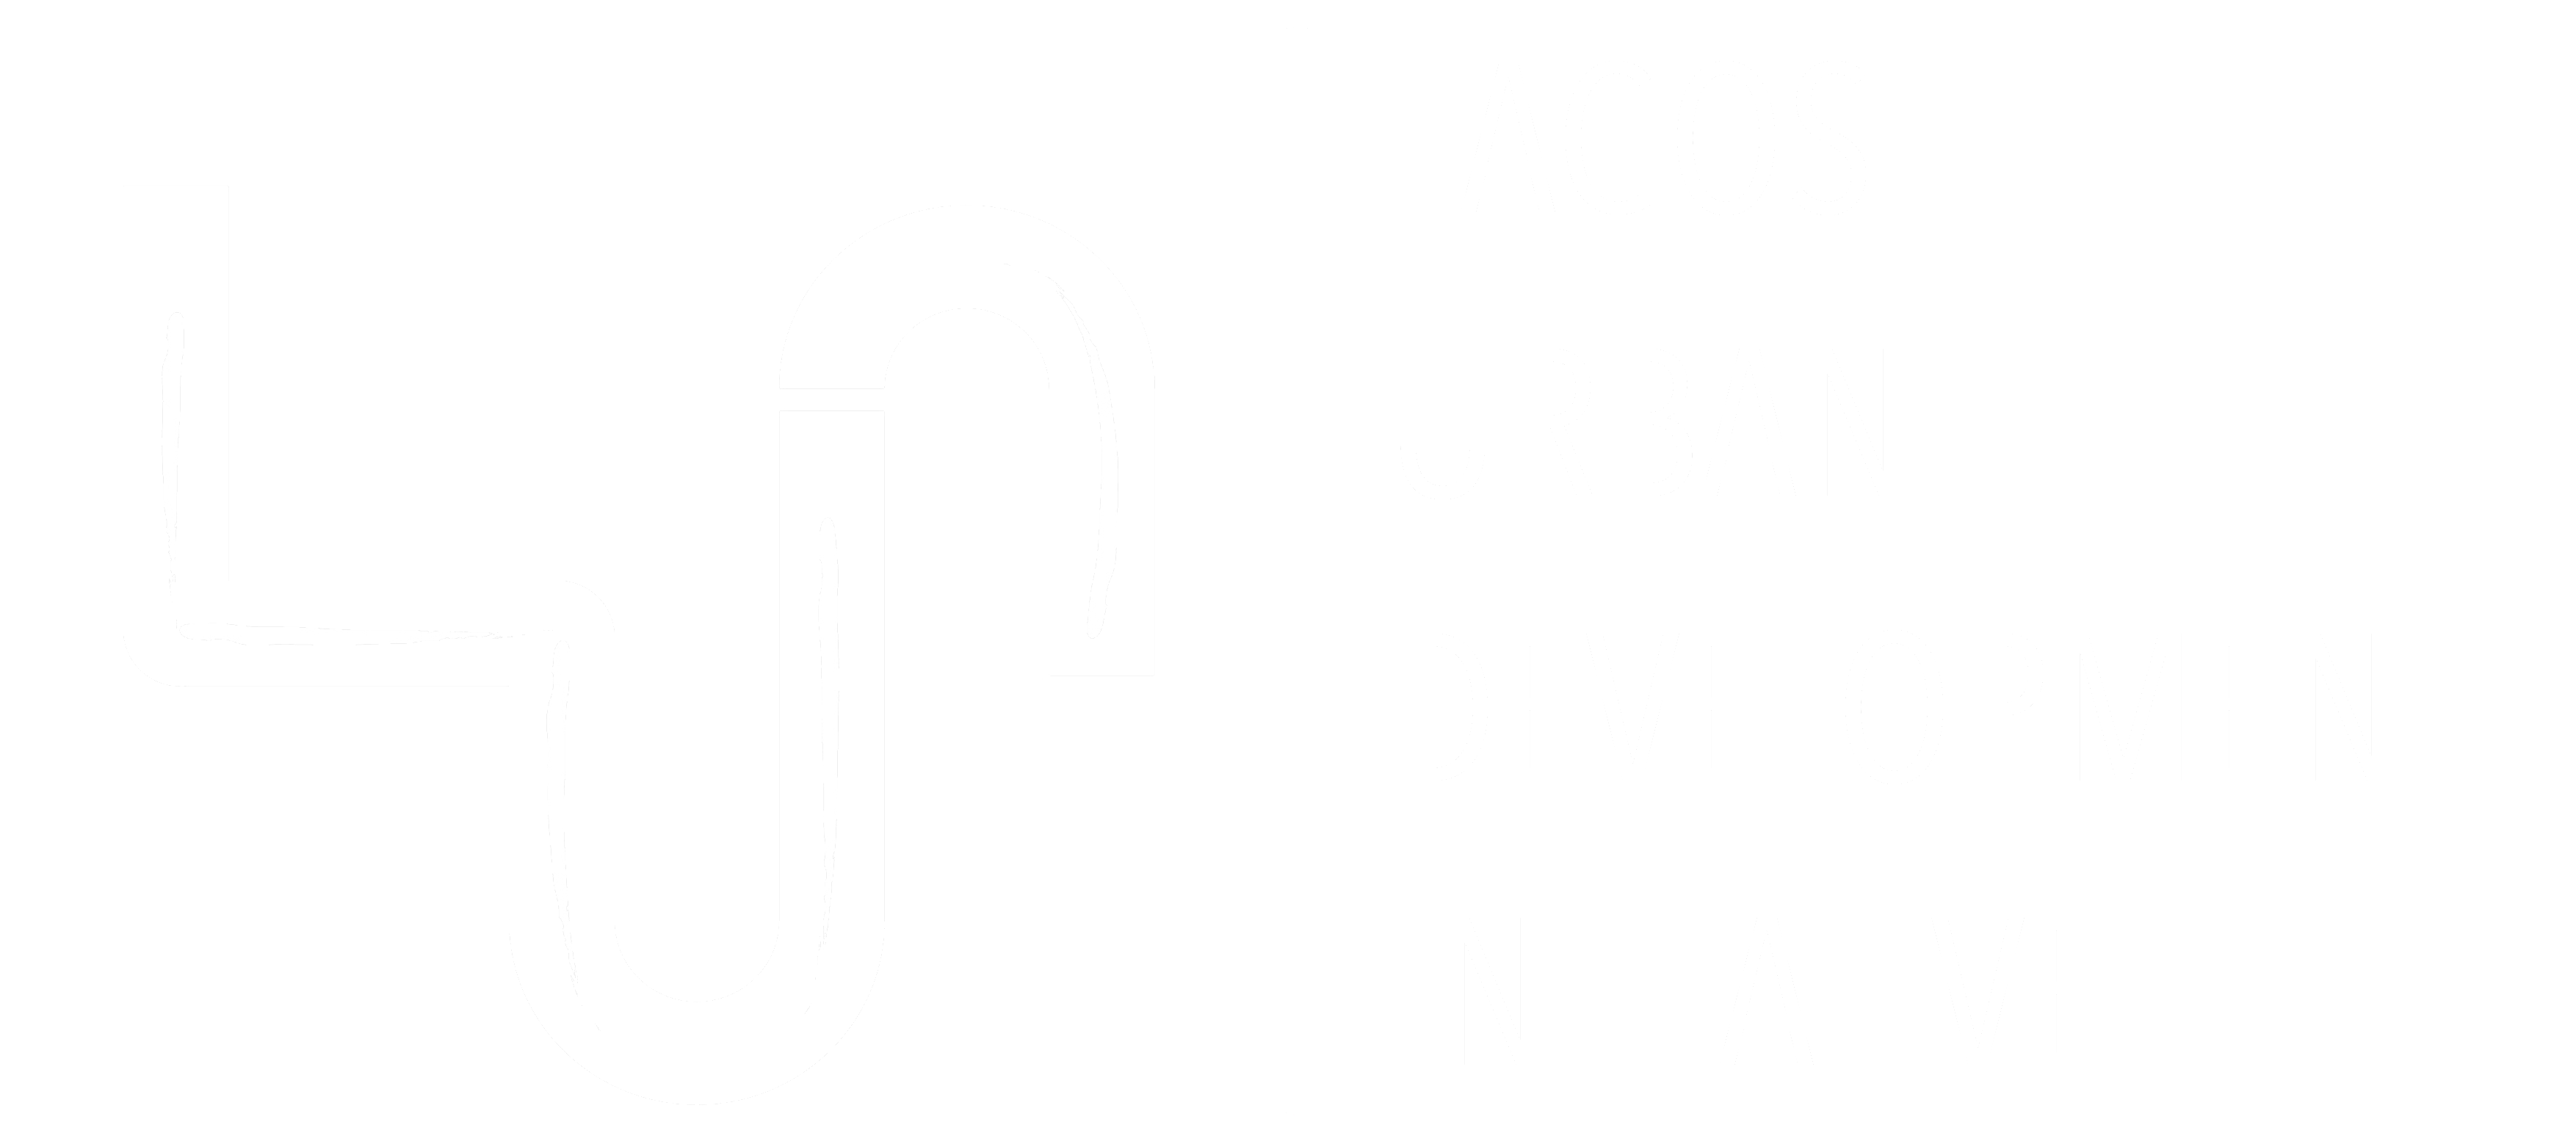 Lagos Urban Development Initiative